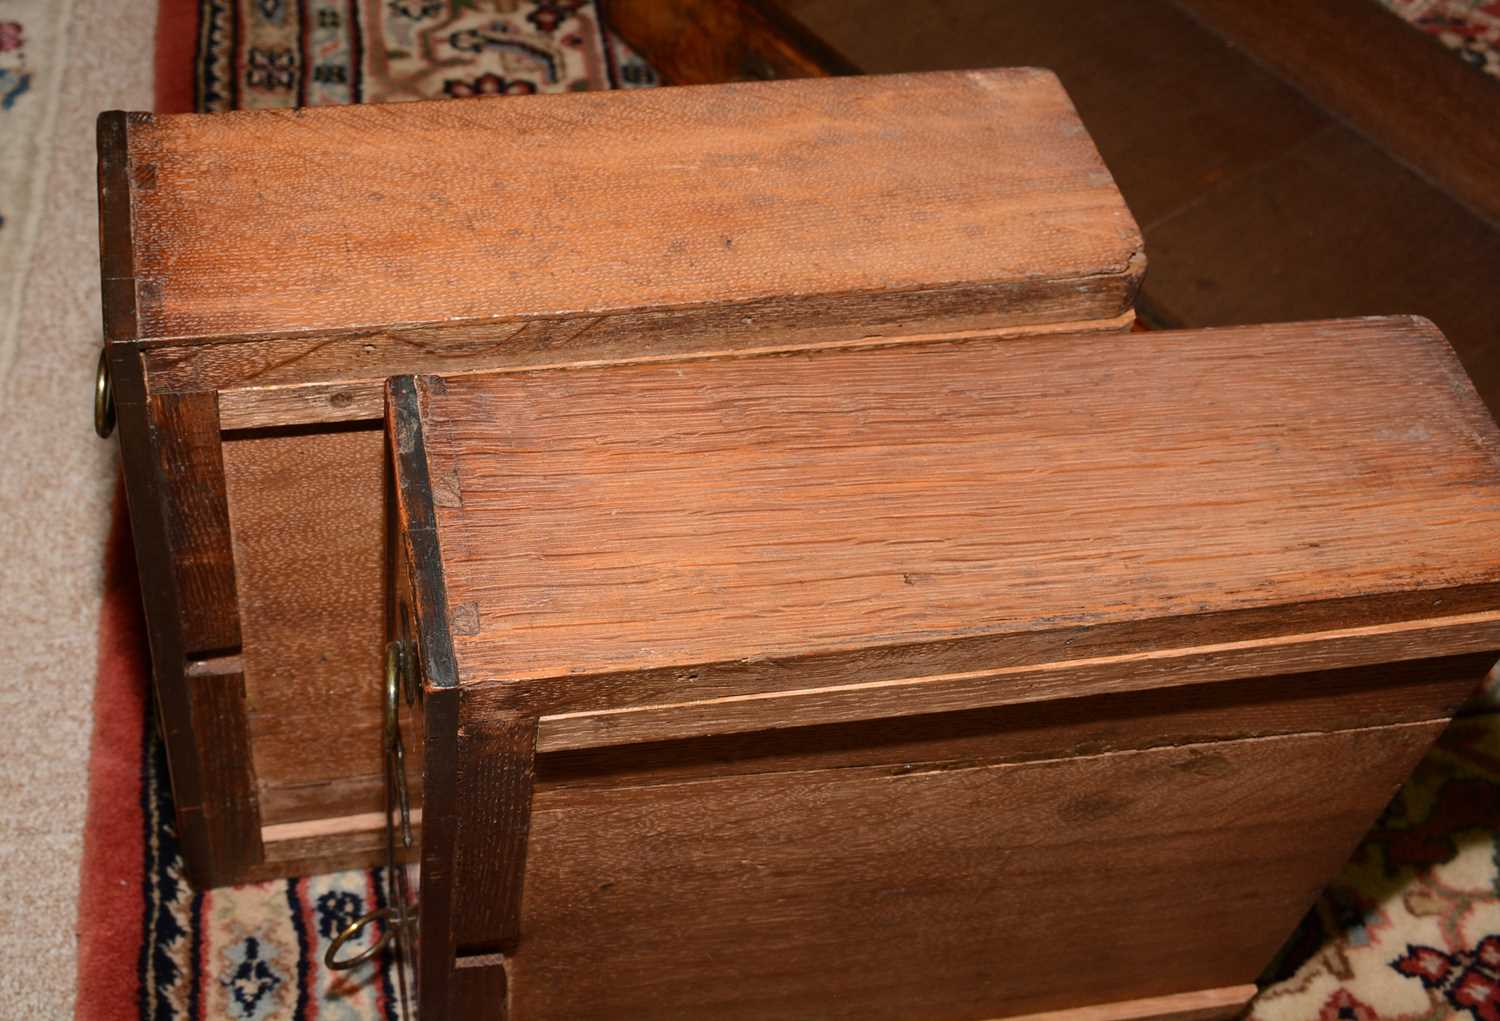 Early 18th Century walnut bachelors chest - Image 18 of 39